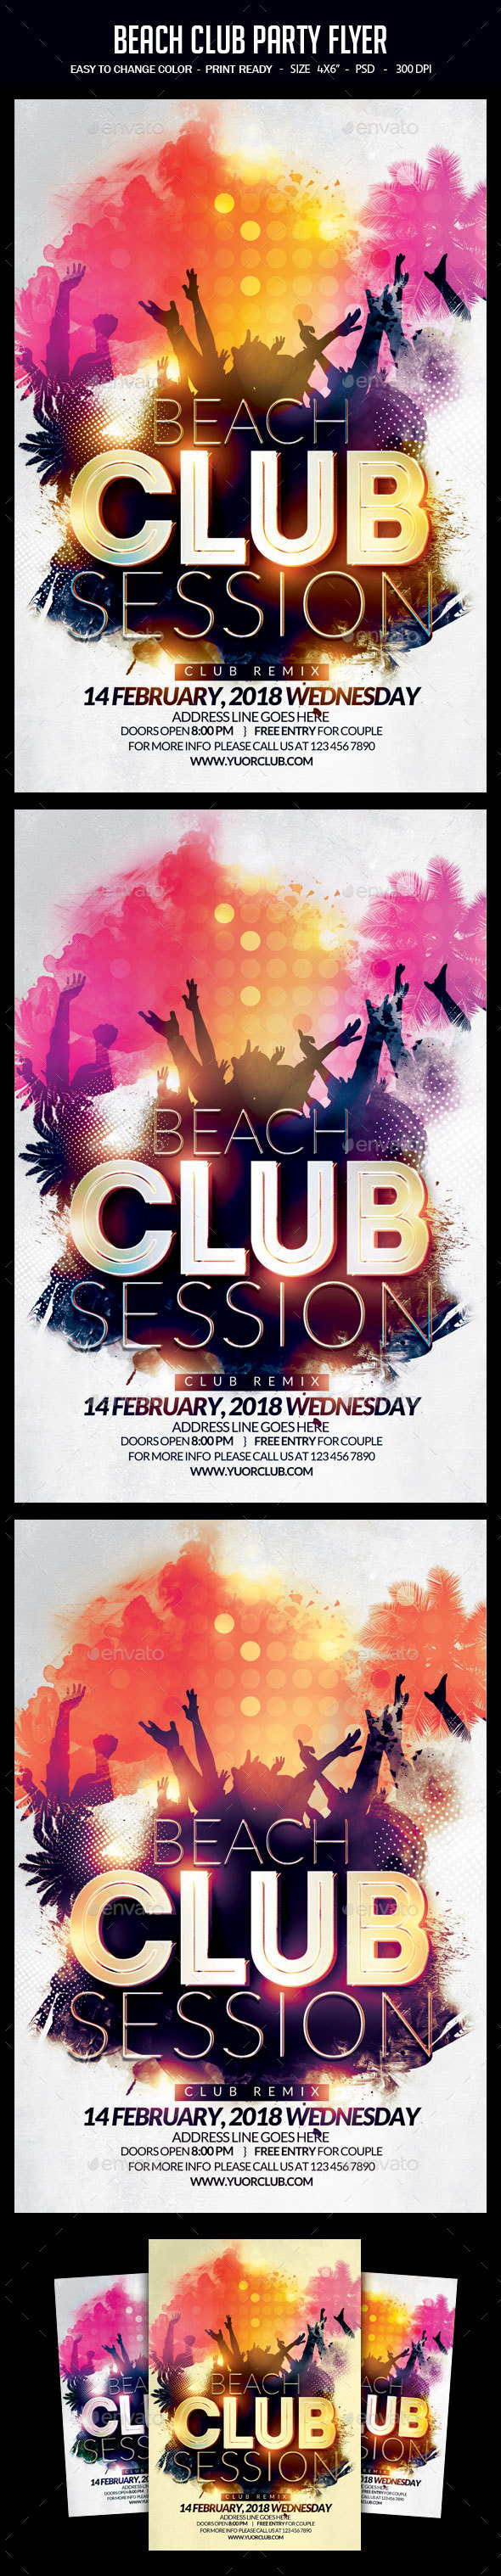 Beach Club Party Flyer - Clubs & Parties Events